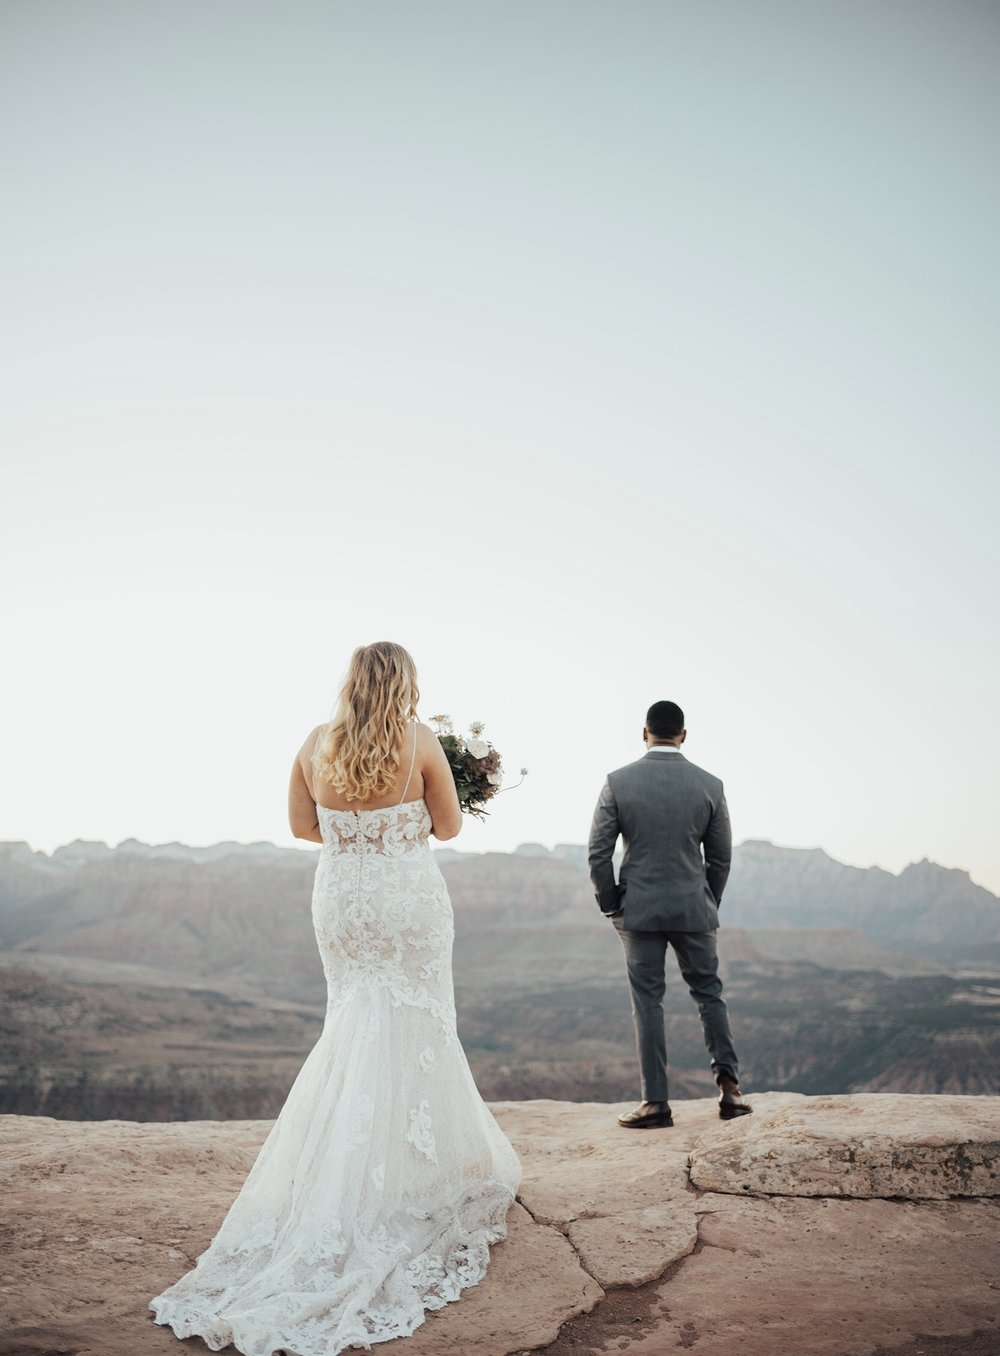 savannah-bridal-shop-ivory-and-beau-maggie-sottero-bride-tuscany-lynette-zion-national-park-wedding-utah-wedding-savannah-wedding-dresses-savannah-wedding-gowns-ashley-smith-photography-vanilla-and-the-bean-2.jpg